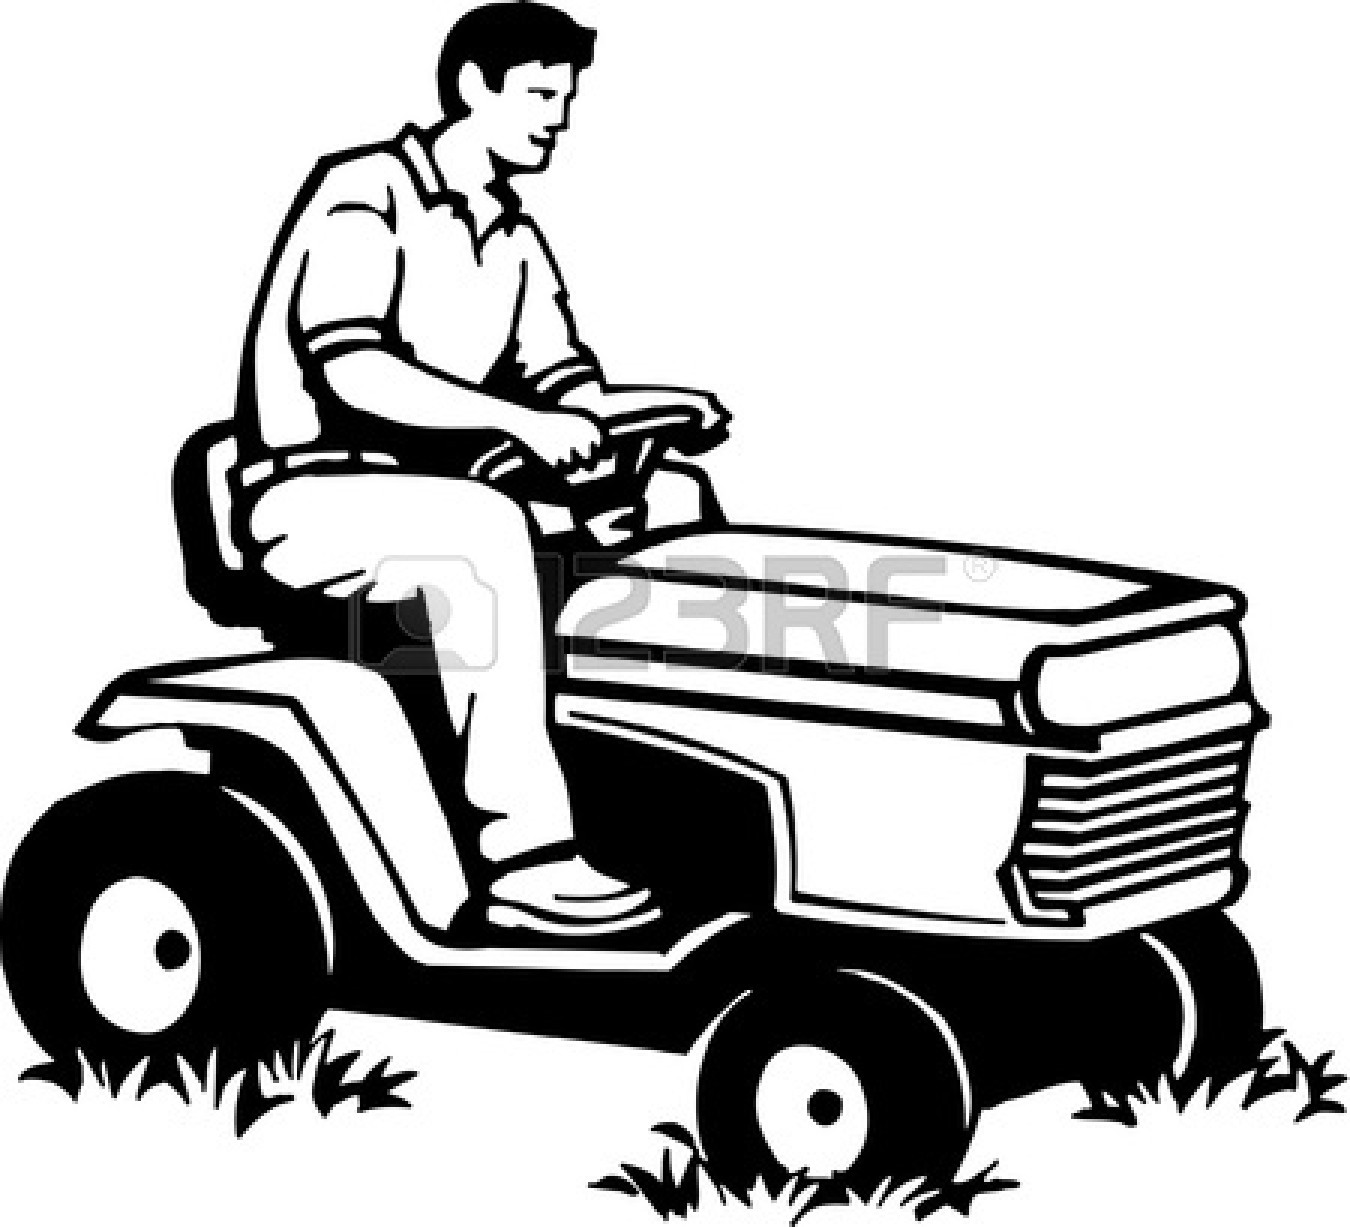 Man Mowing On Zero Turn Mower Clipart.